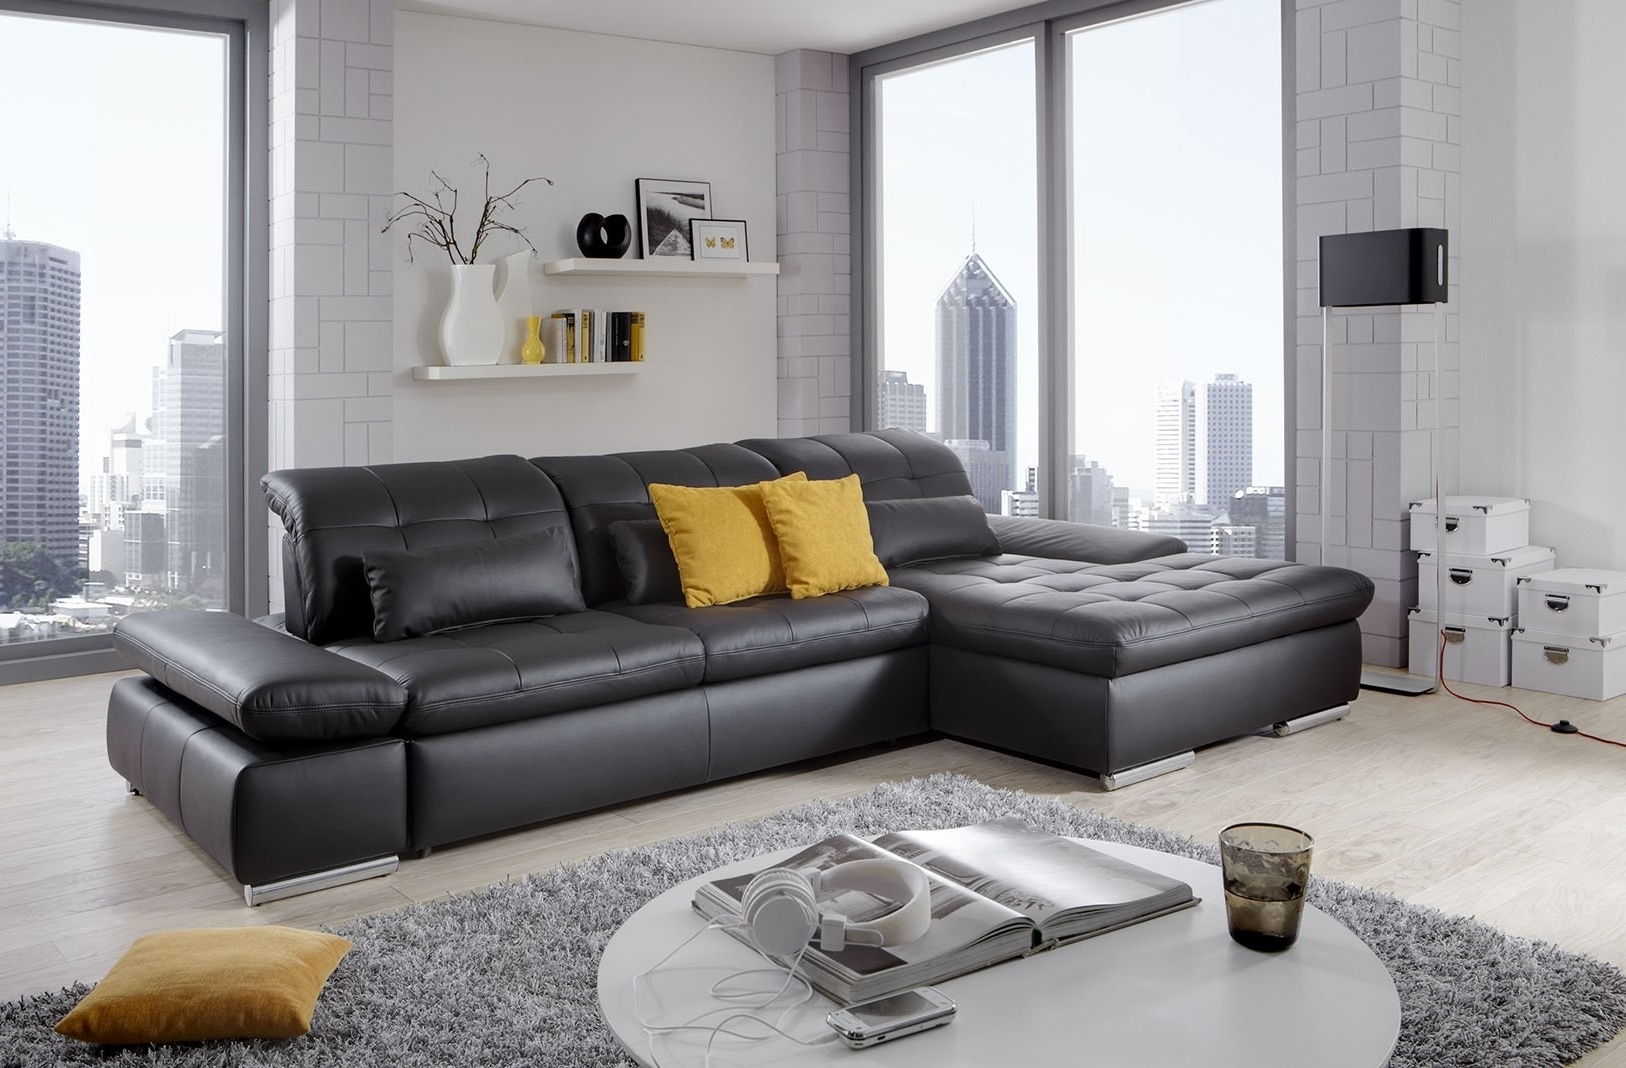 Well Known Alpine Sectional Sofa In Black Leather Left Chaise Inside Trinidad And Tobago Sectional Sofas (View 2 of 15)